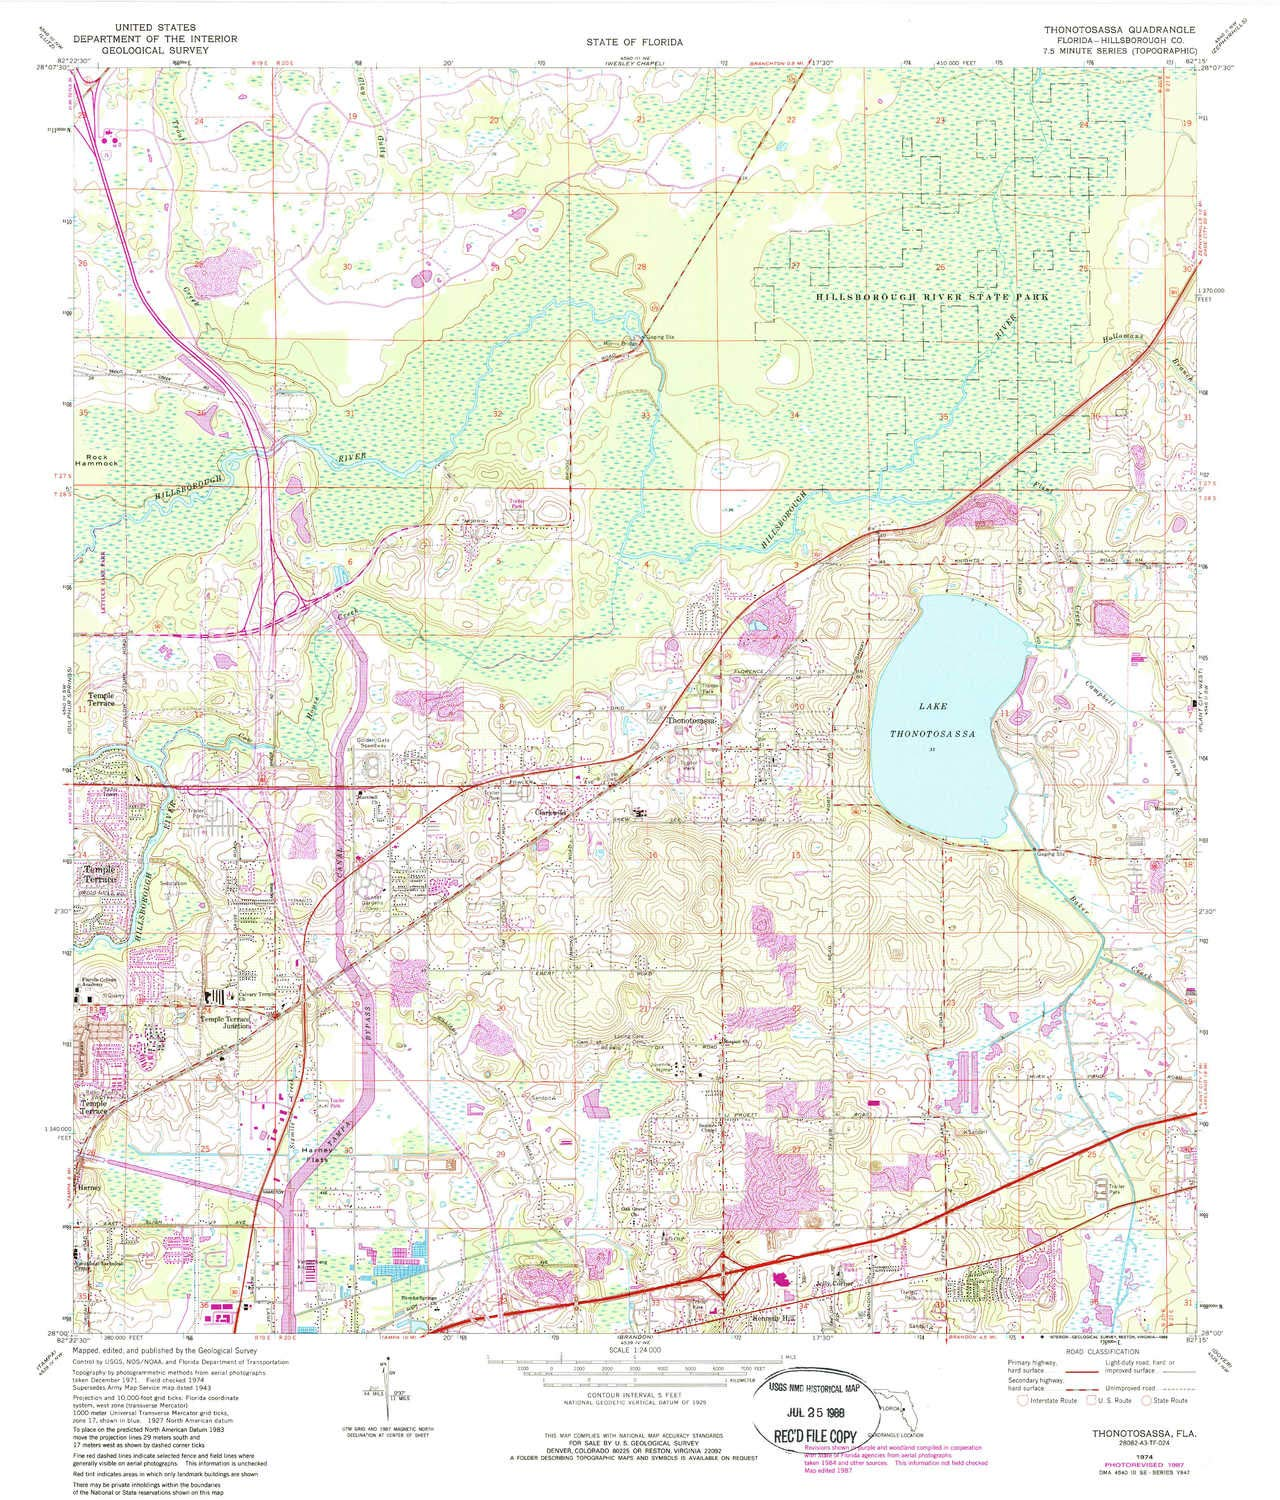 1:24000 Scale YellowMaps Thonotosassa FL topo map Updated 1988 1974 7.5 X 7.5 Minute 26.9 x 23 in Historical